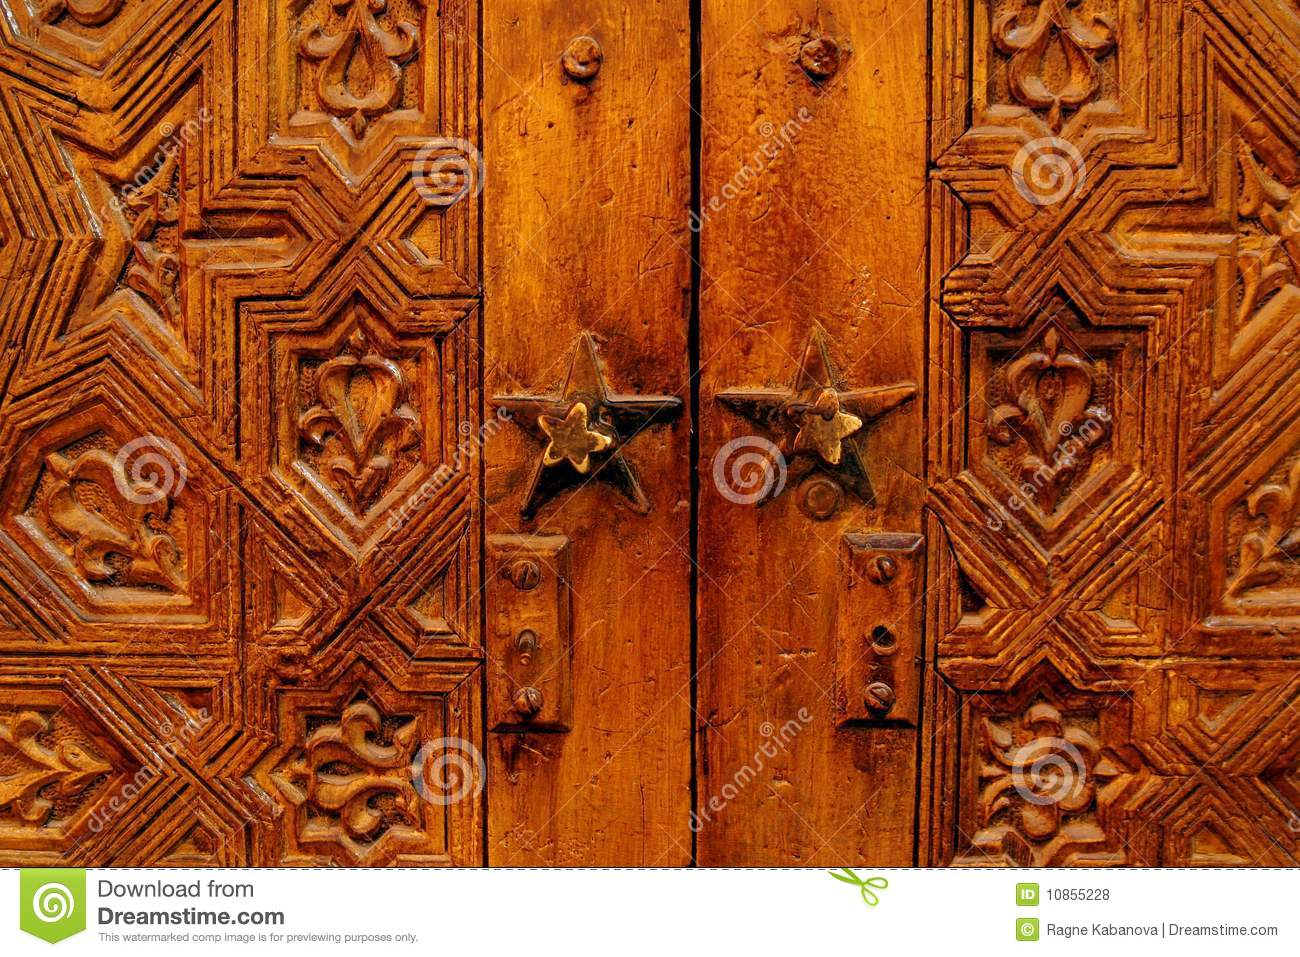 957 #B54B0E Beautiful Hand Carved Wooden Door In Morocco Royalty Free Stock Photos  image Beautiful Wooden Doors 46731300